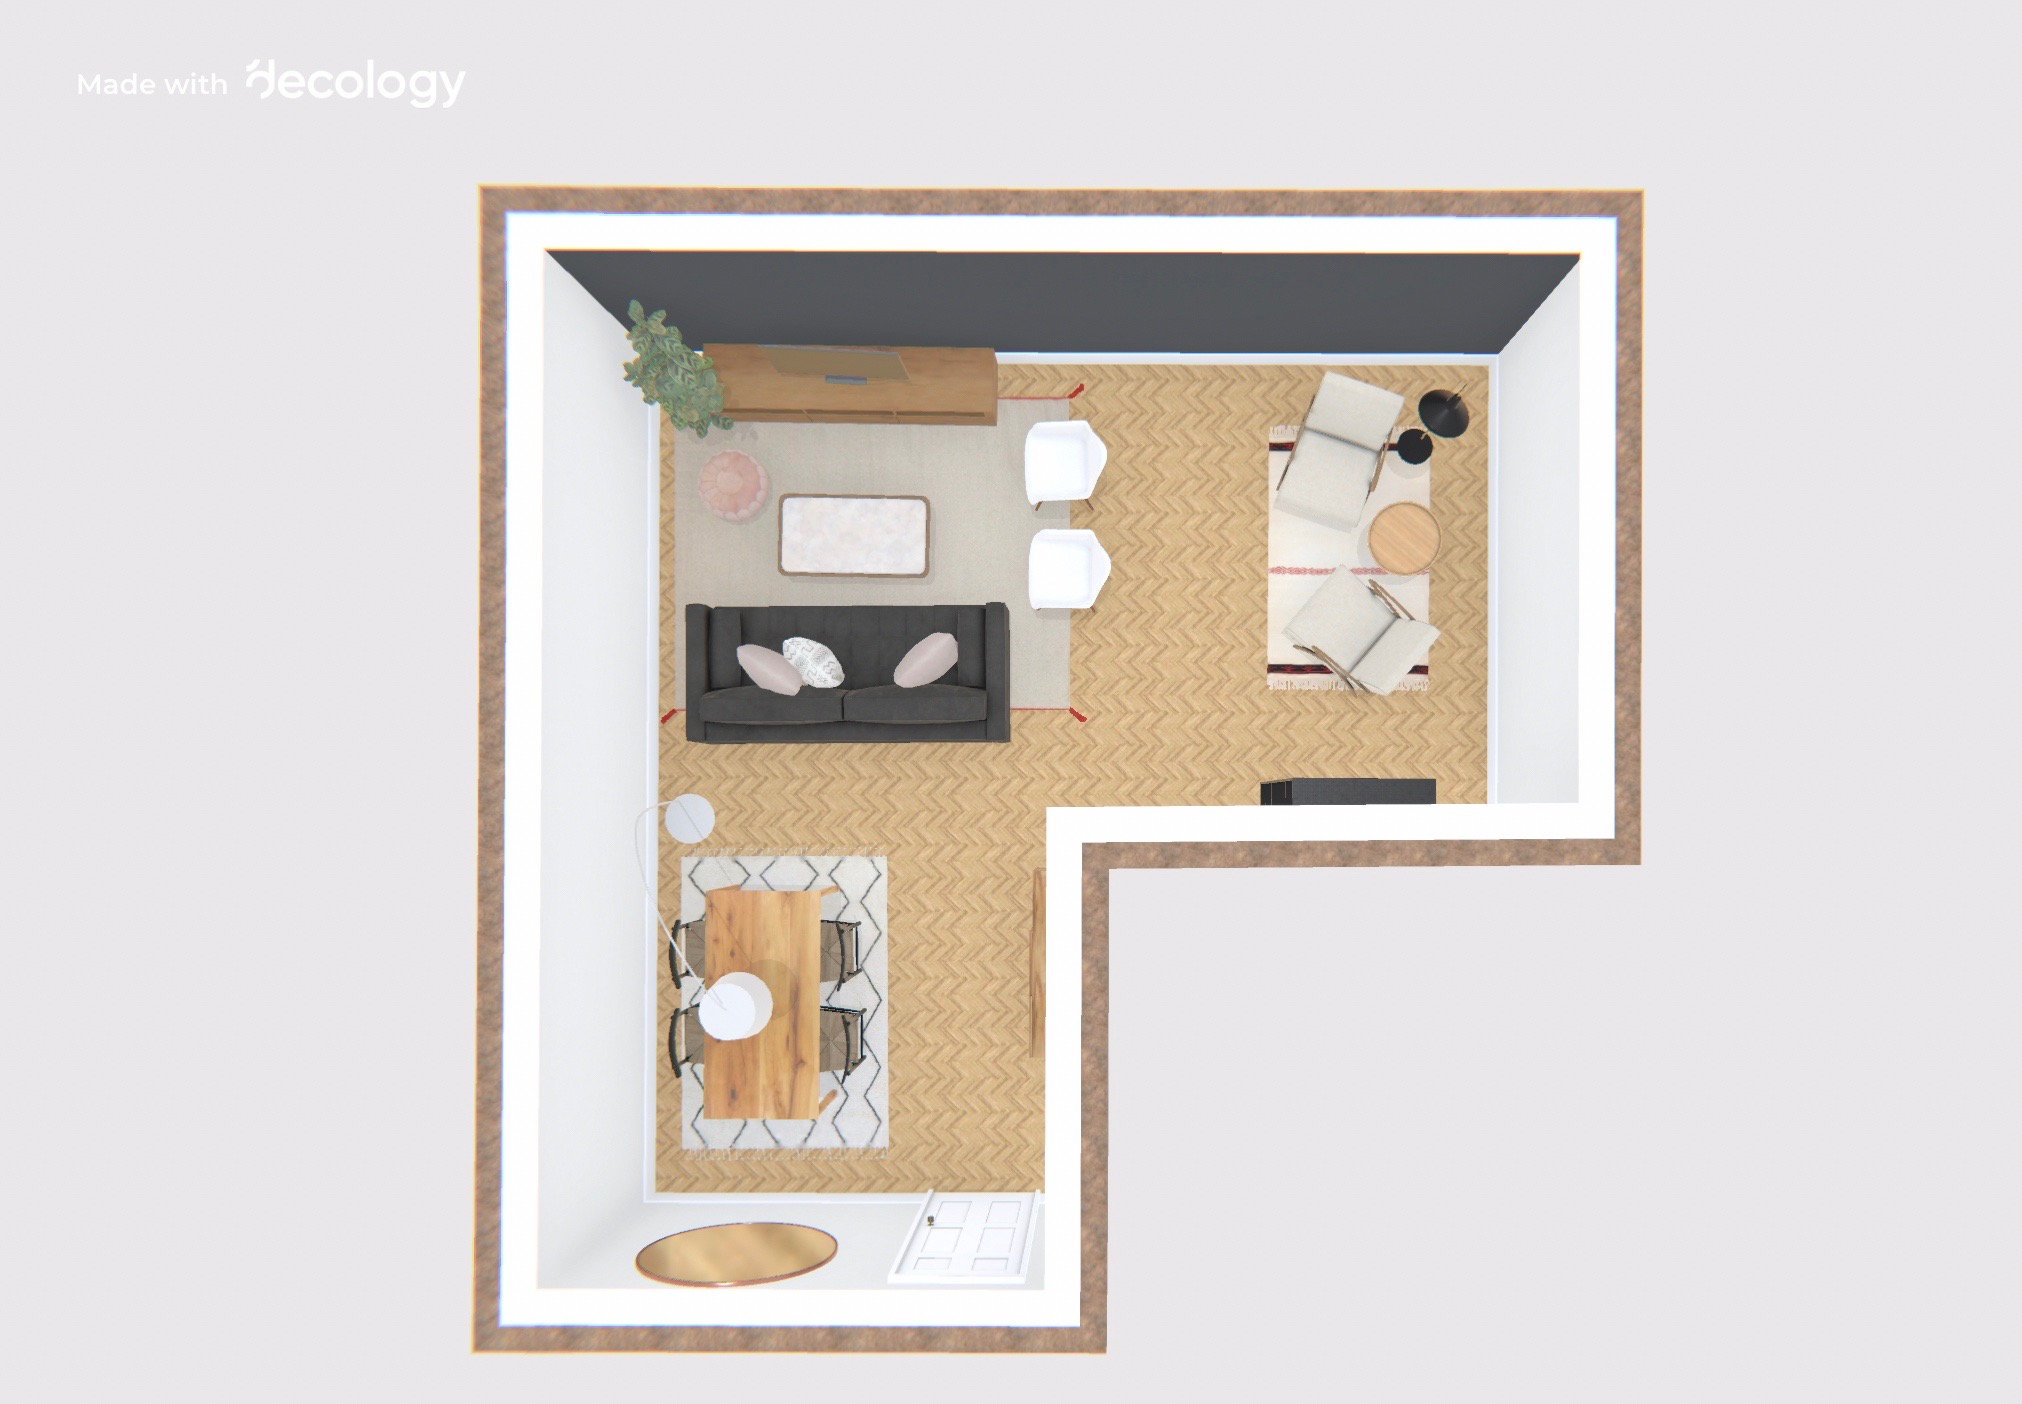 Photo from decology.com best example for L shaped living room design.